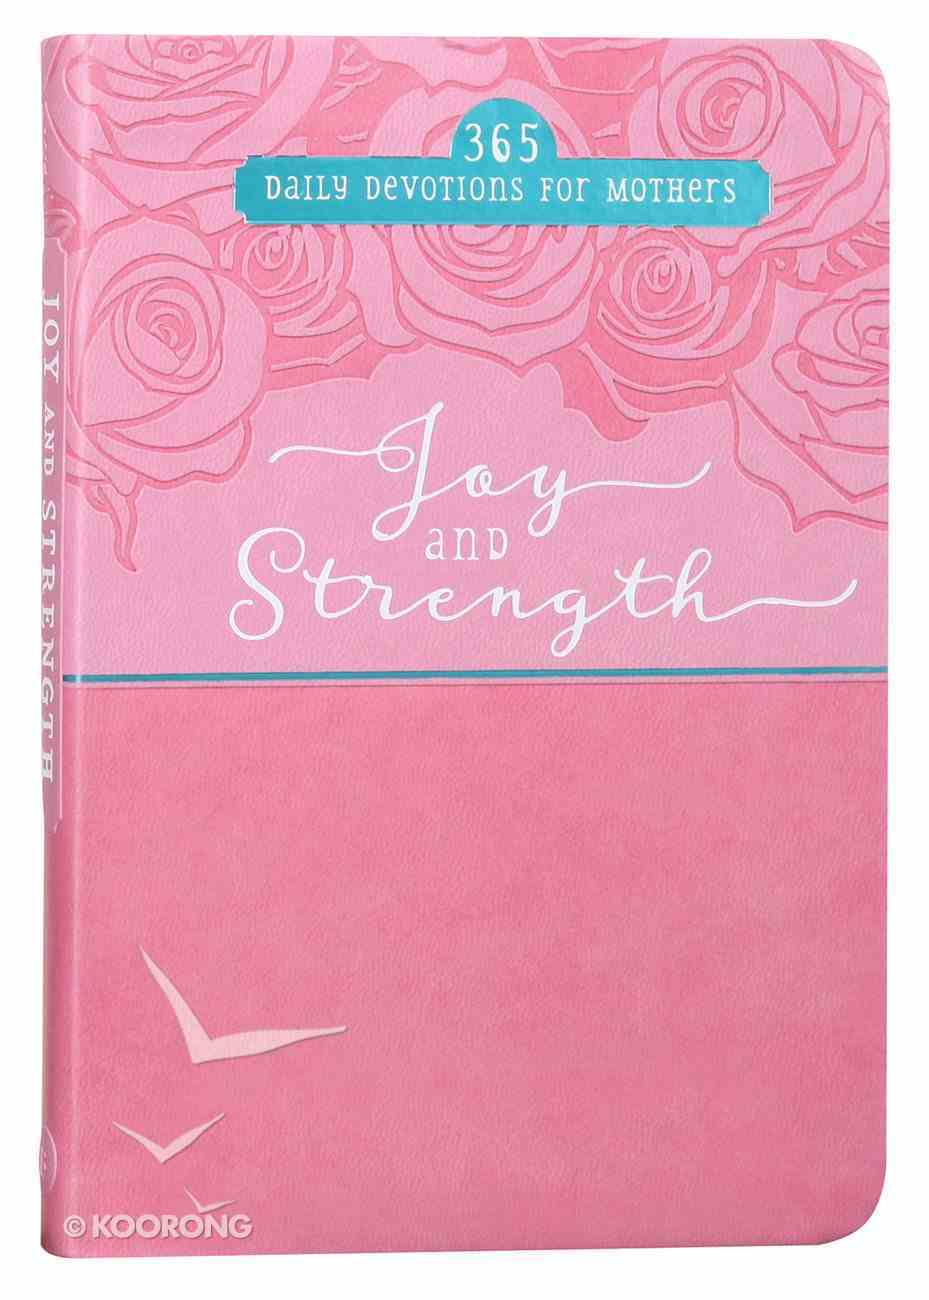 Joy and Strength: 365 Daily Devotions For Mothers (365 Daily Devotions Series) Imitation Leather